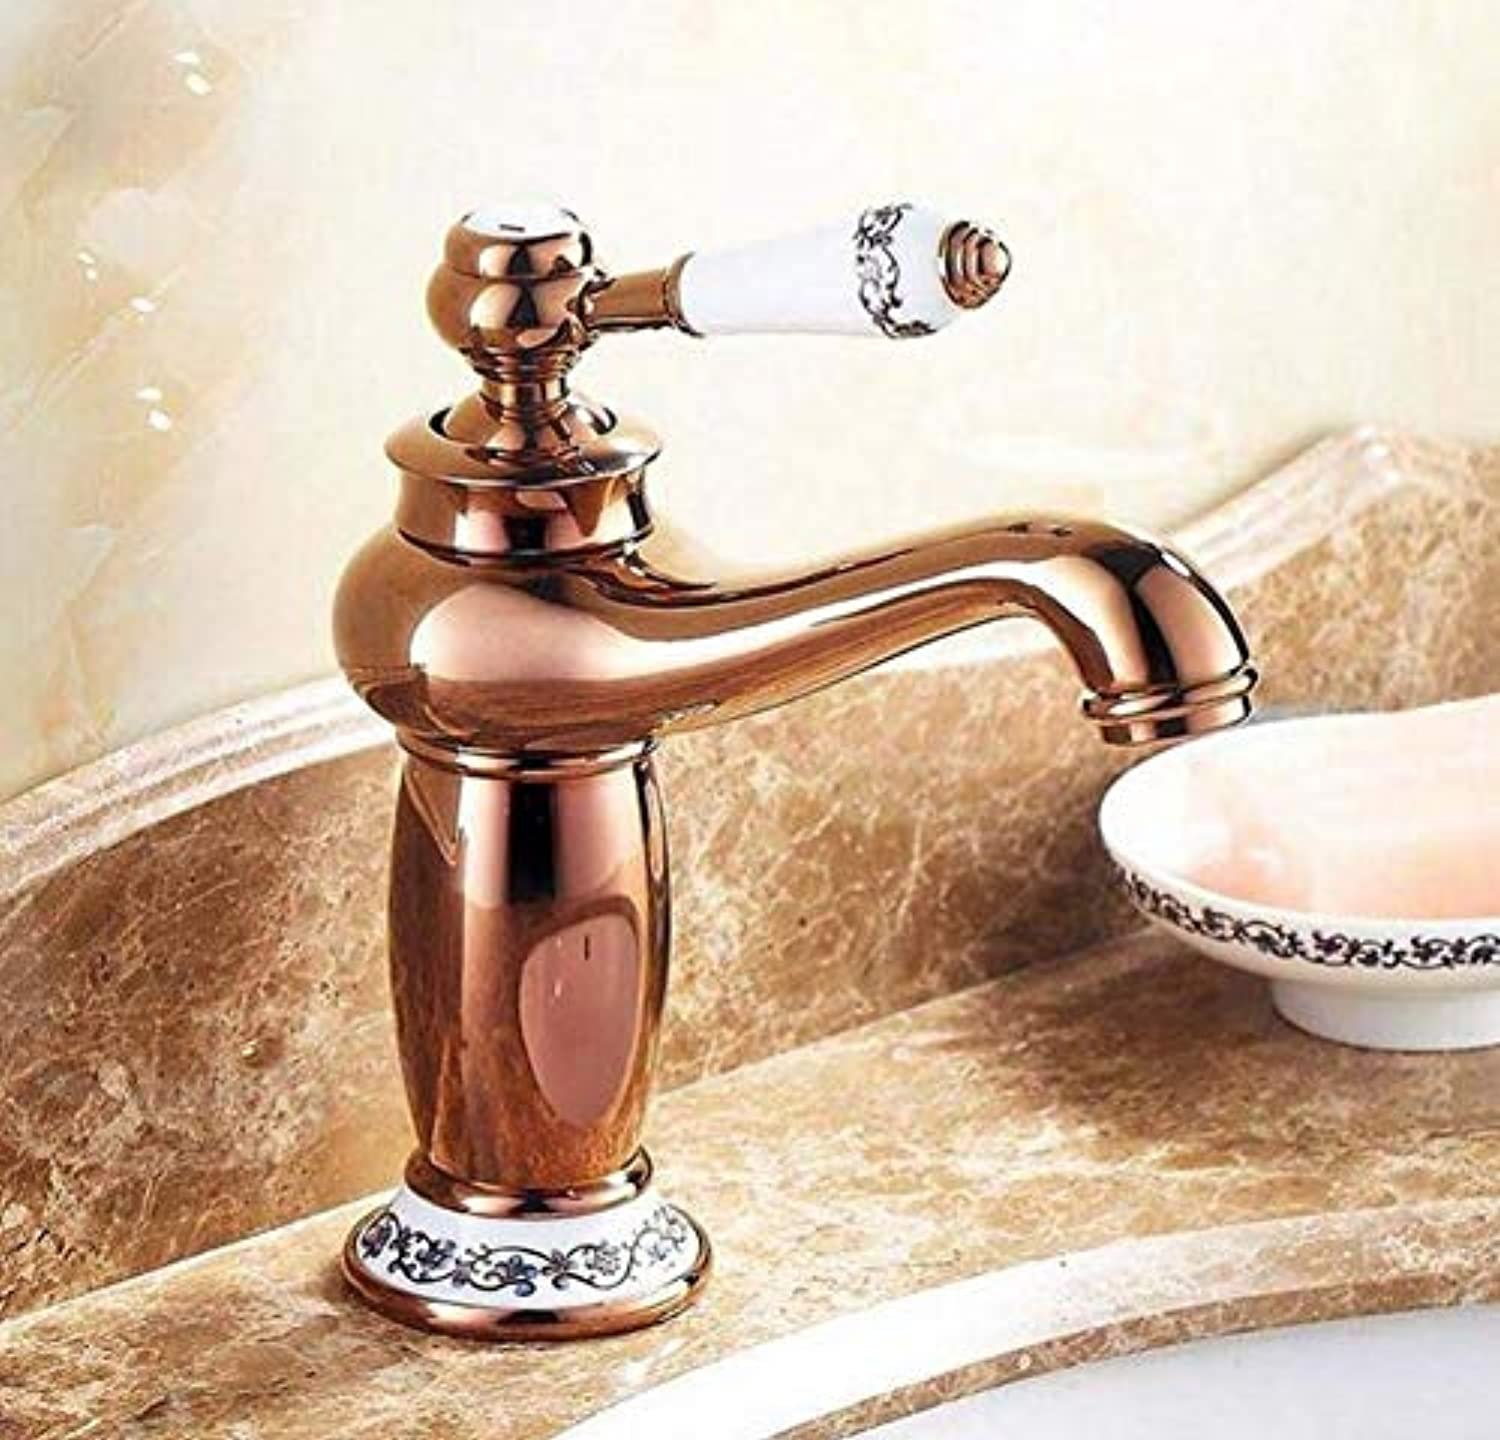 Brass Wall Faucet Chrome Brass Faucet Mixer Antique Bronze Finish Brass Sink Faucet Single Handle Vessel Sink Water Tap Mixer